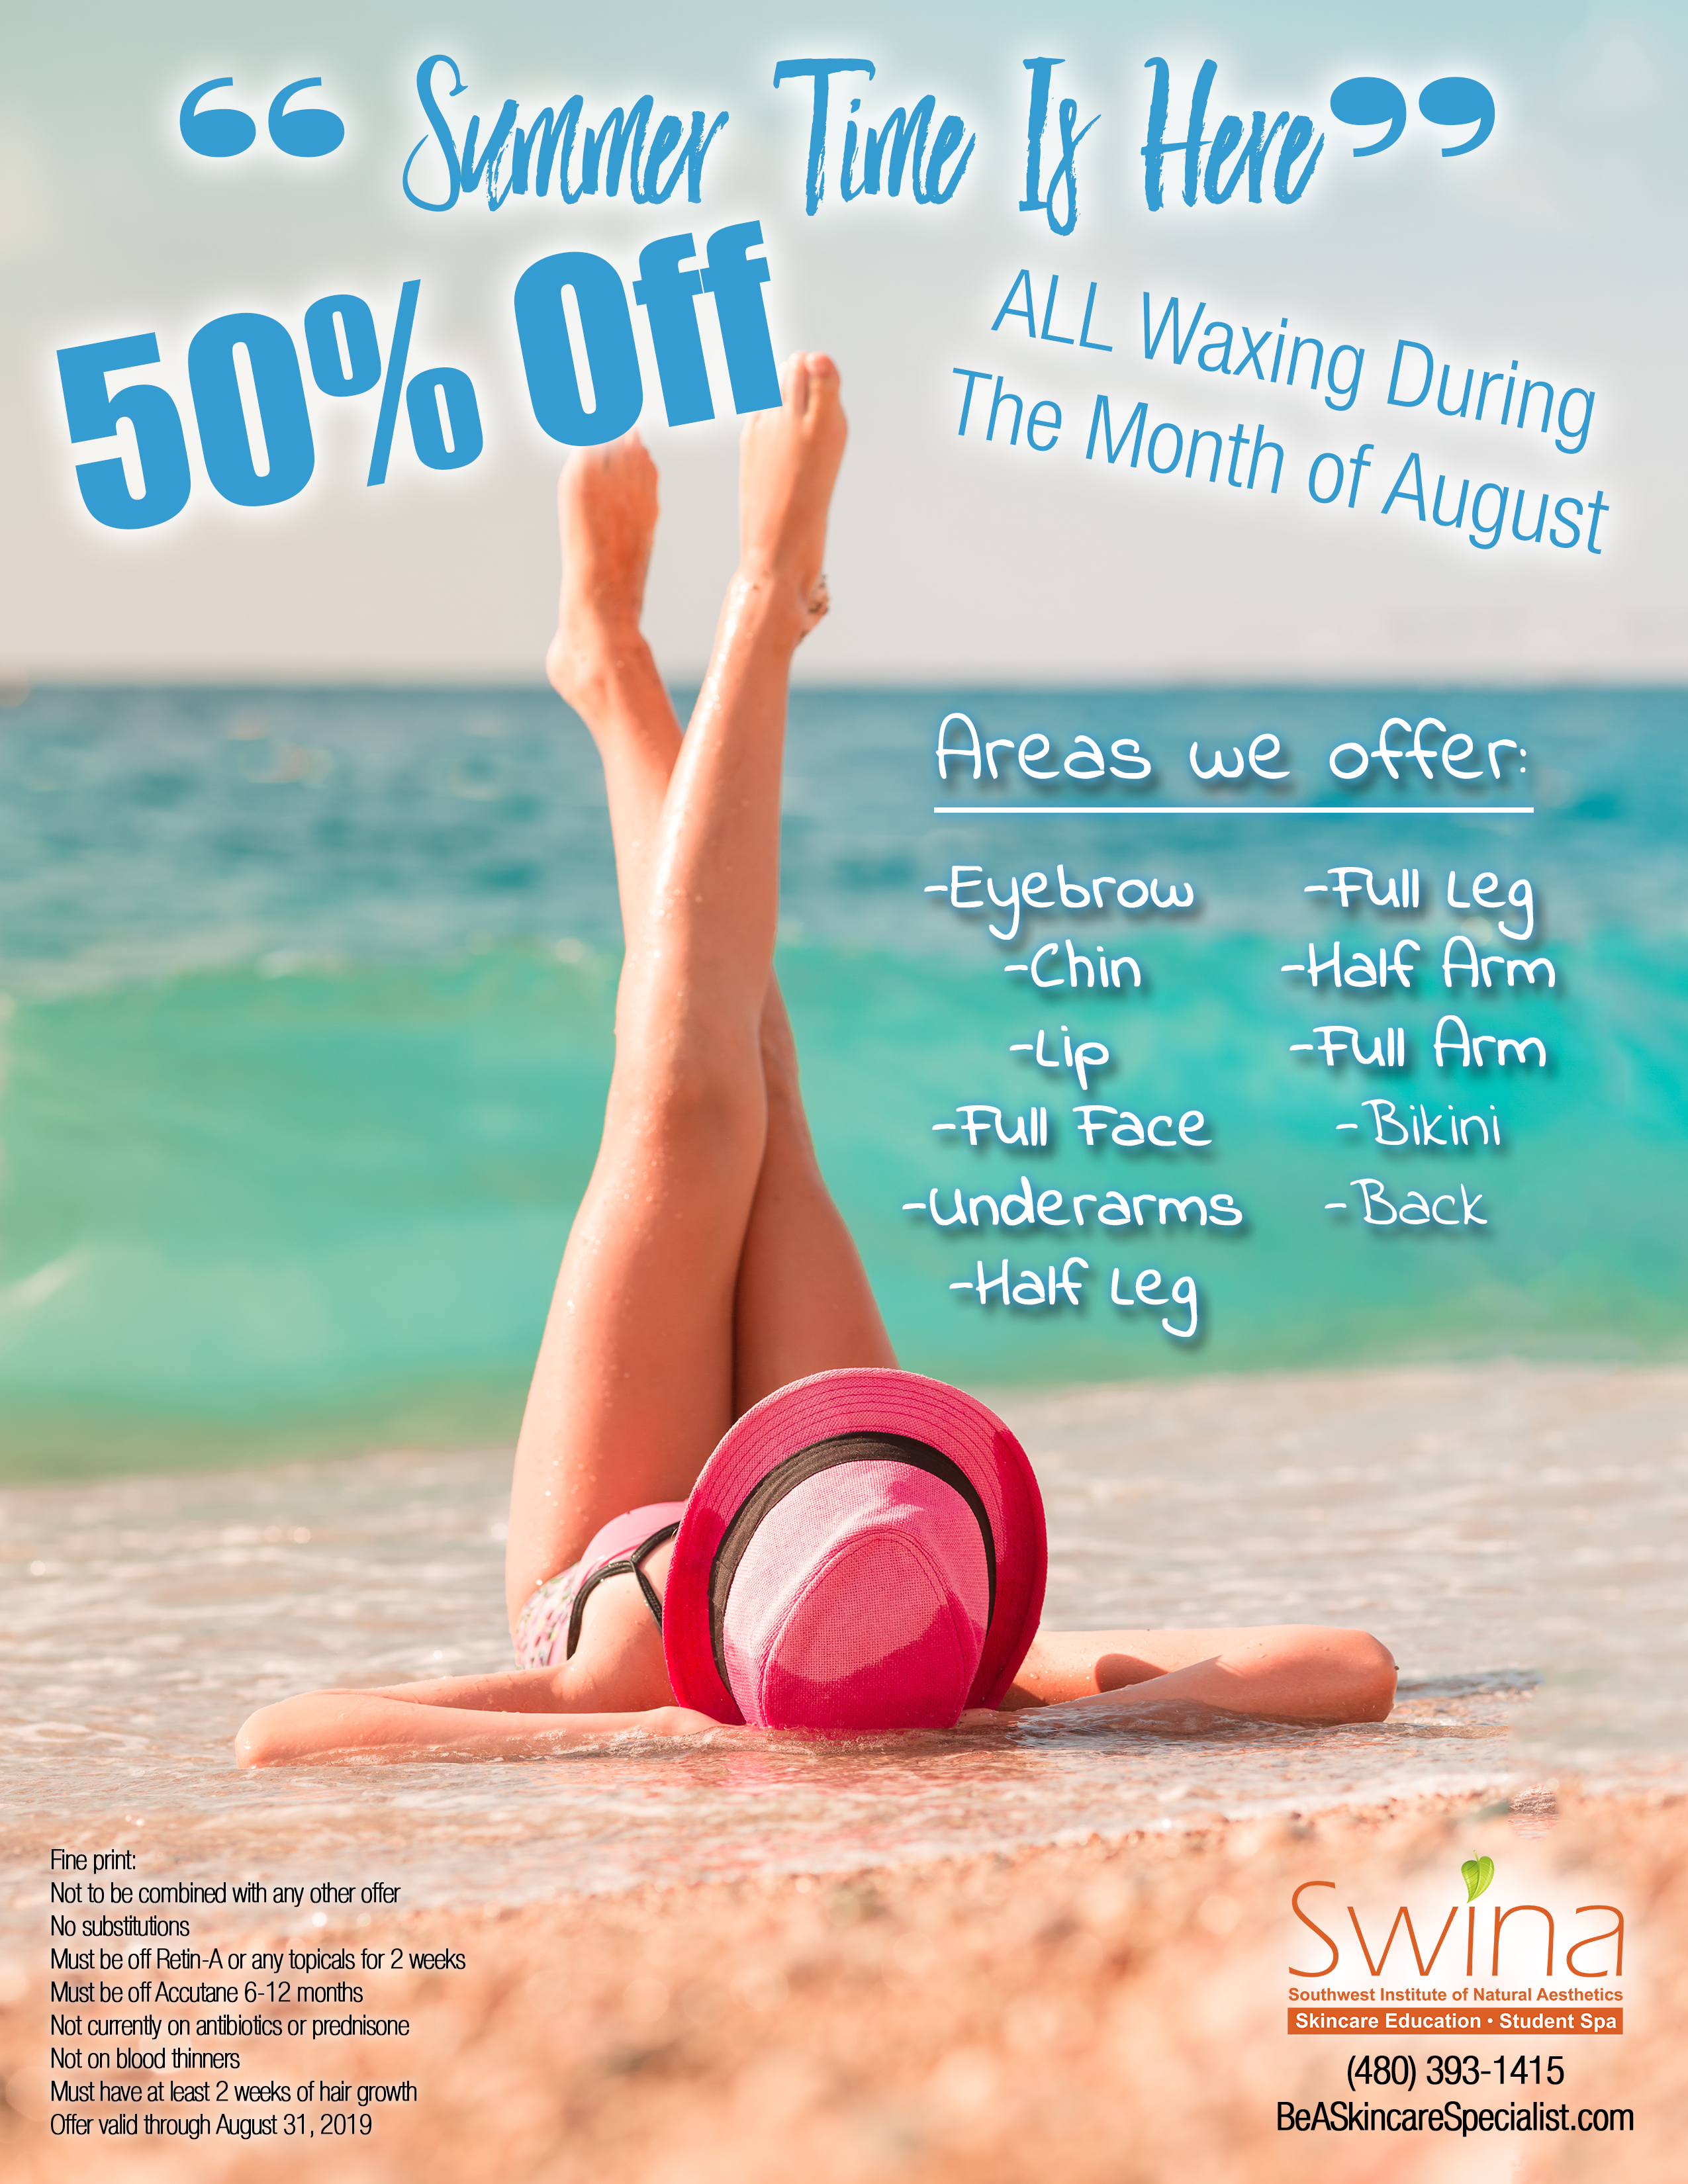 SWINA Clinic August Special